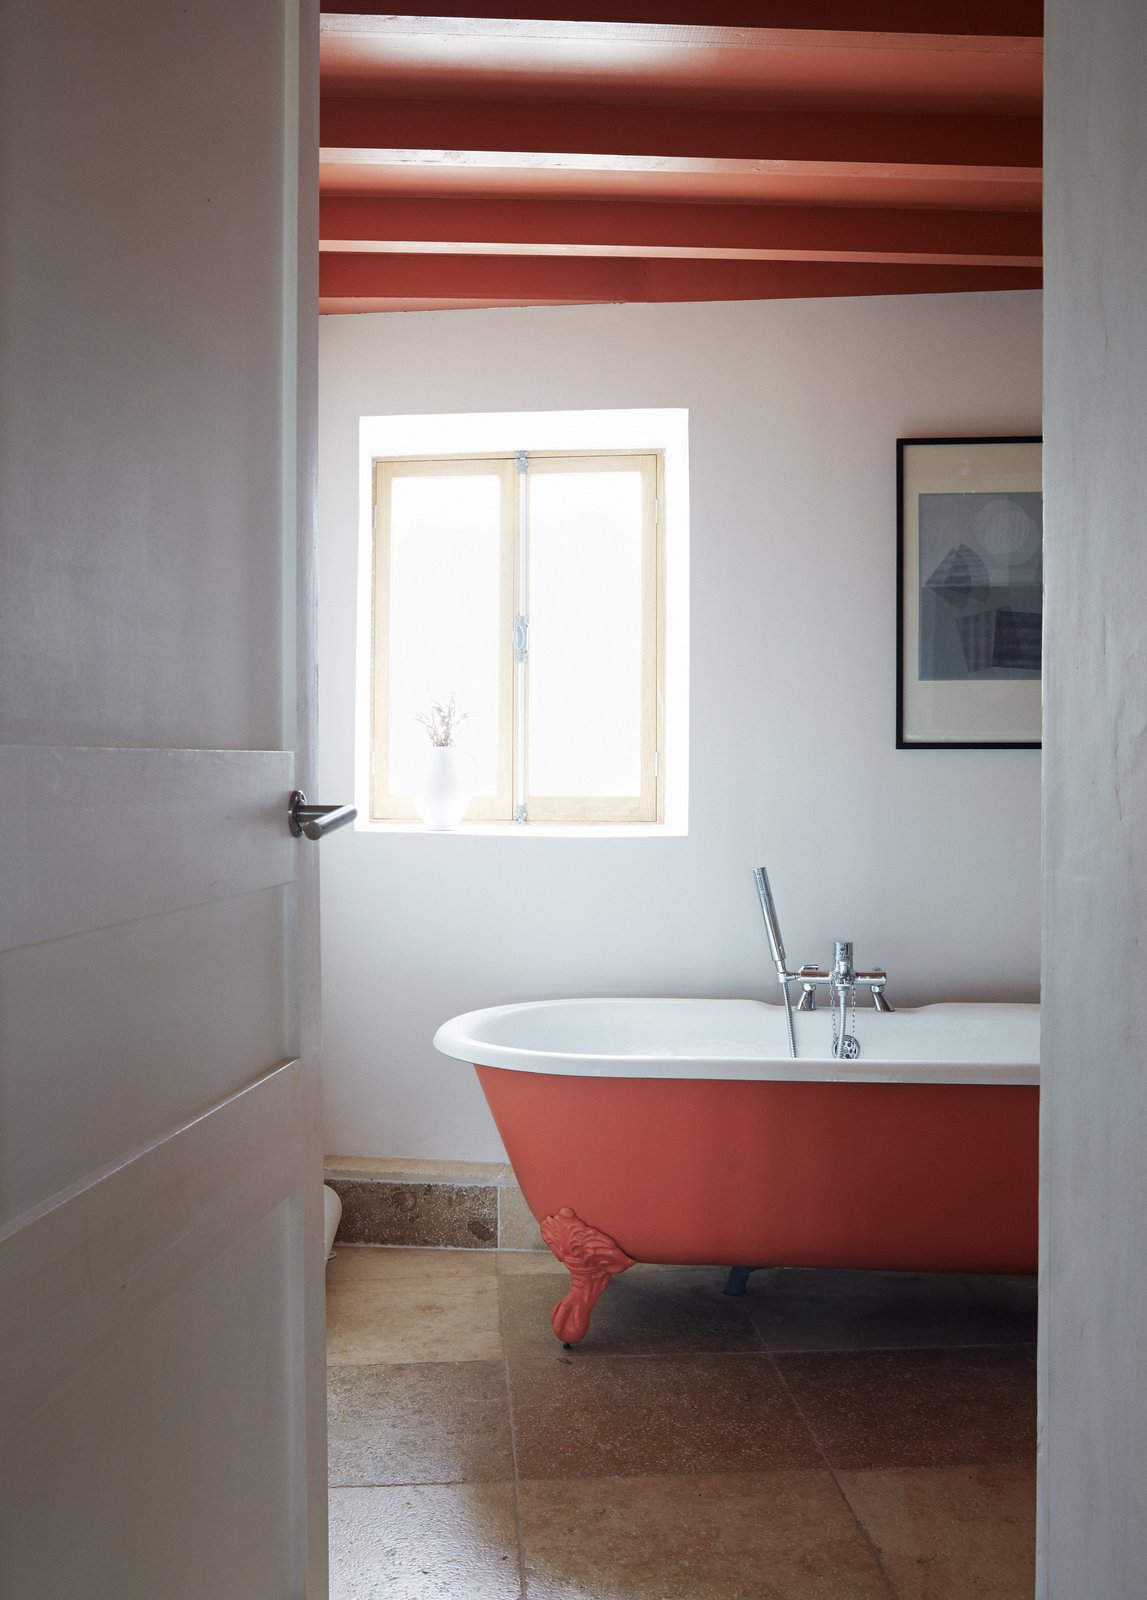 Pinch-Bannon Residence bathroom with sliding windows and orange painted ceilings with exposed beams.